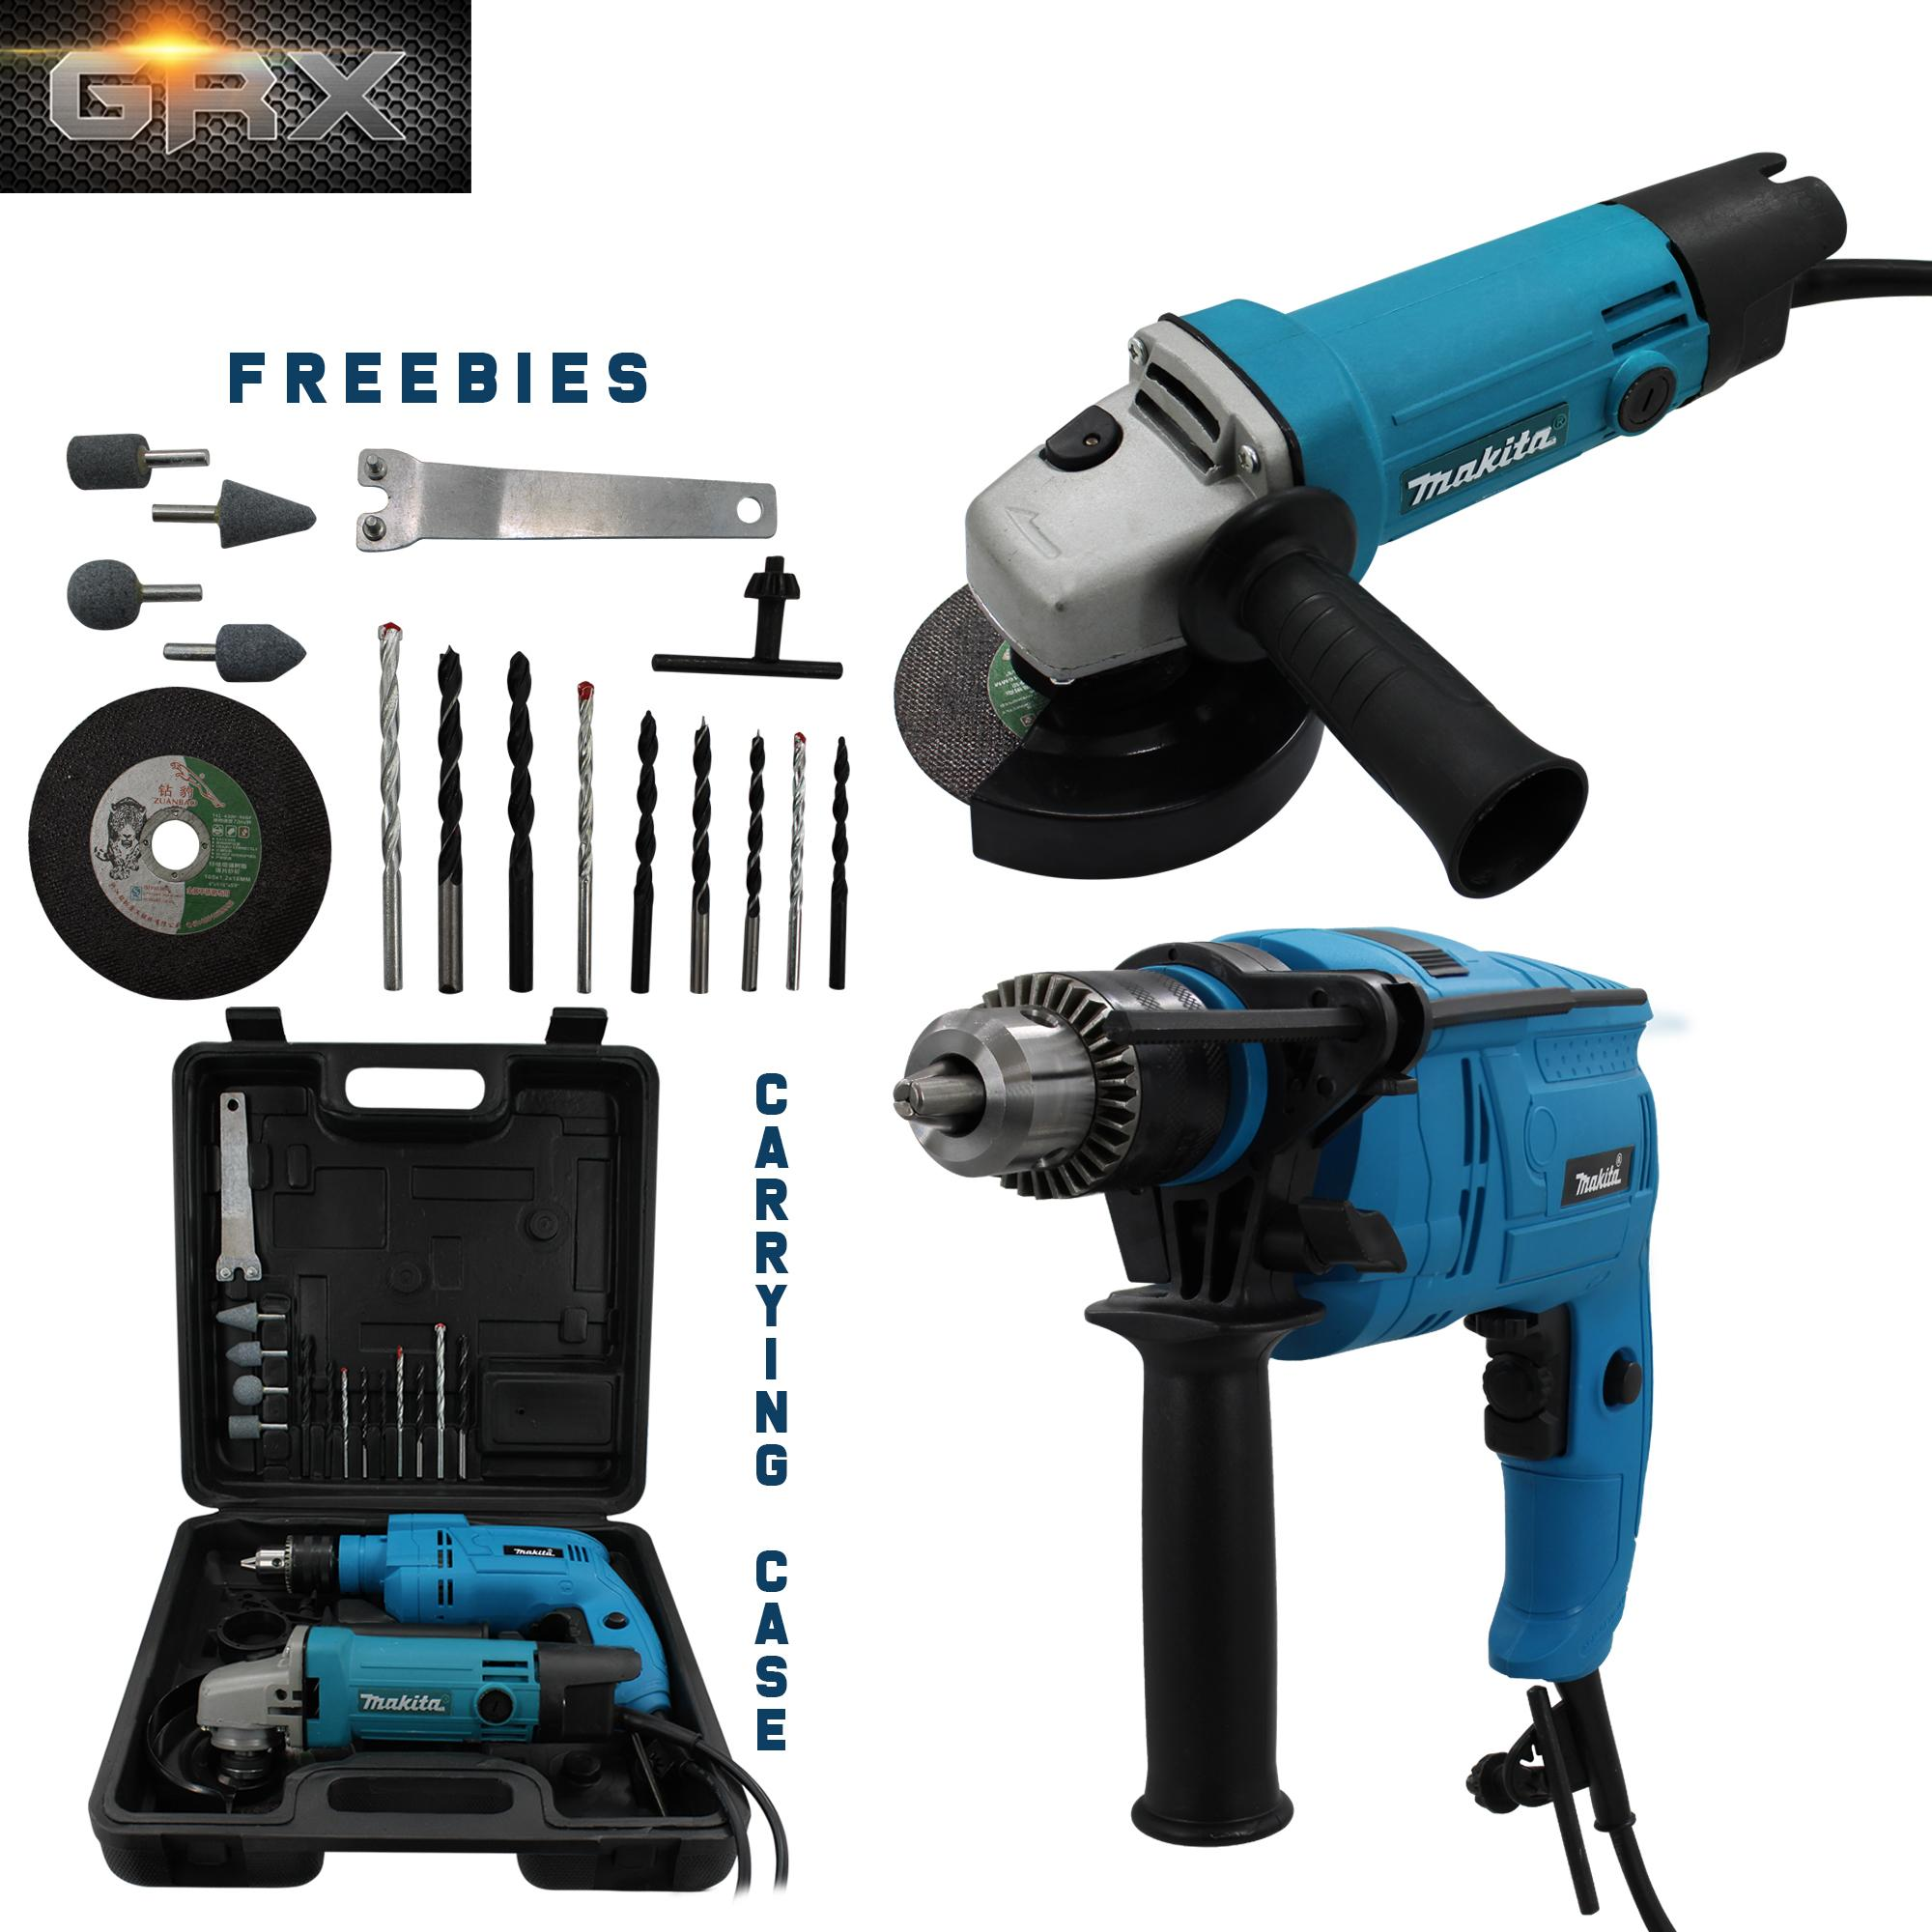 2in1 Makita 9556NB Grinder + Makita HP6013 Drill (Model B)